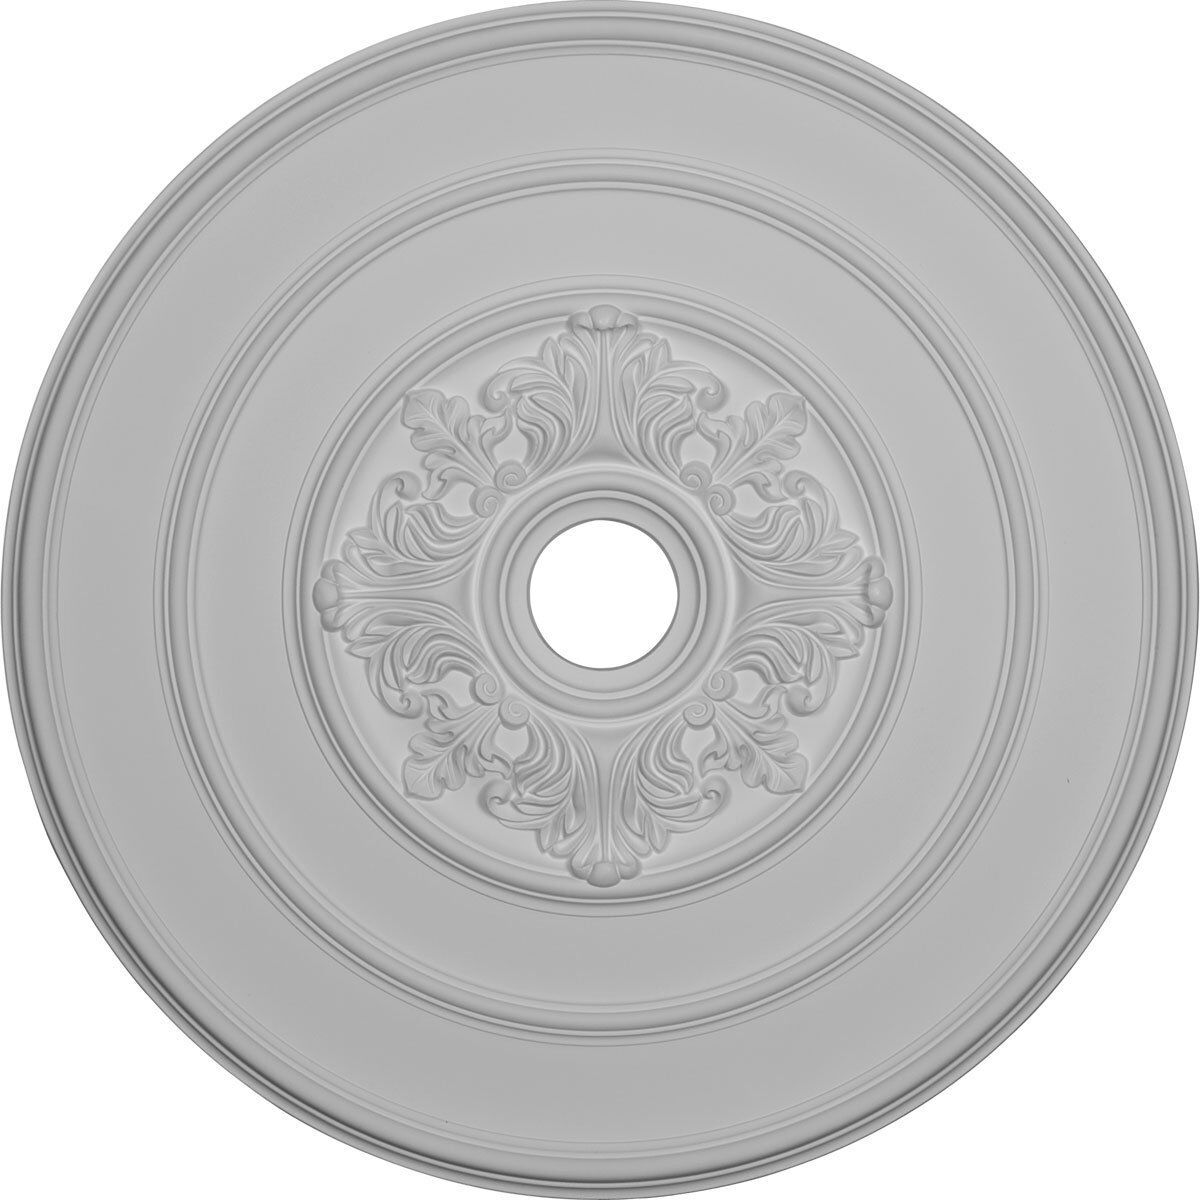 26 OD x 3 1 8 ID Ceiling Medallion (Fits Canopies up to 4 1 4 ), CM6178